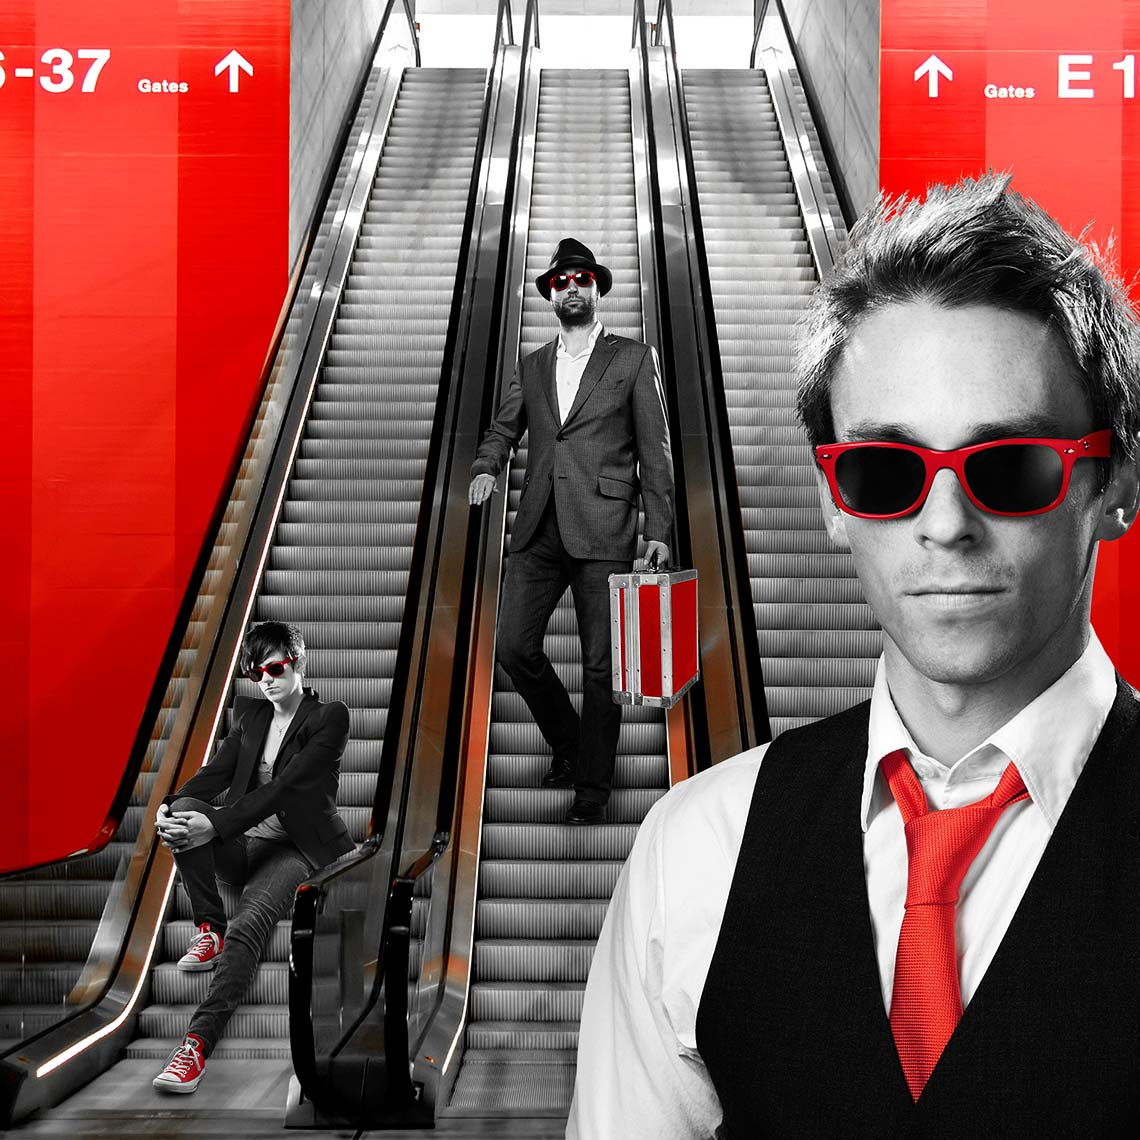 escalator_2_flat